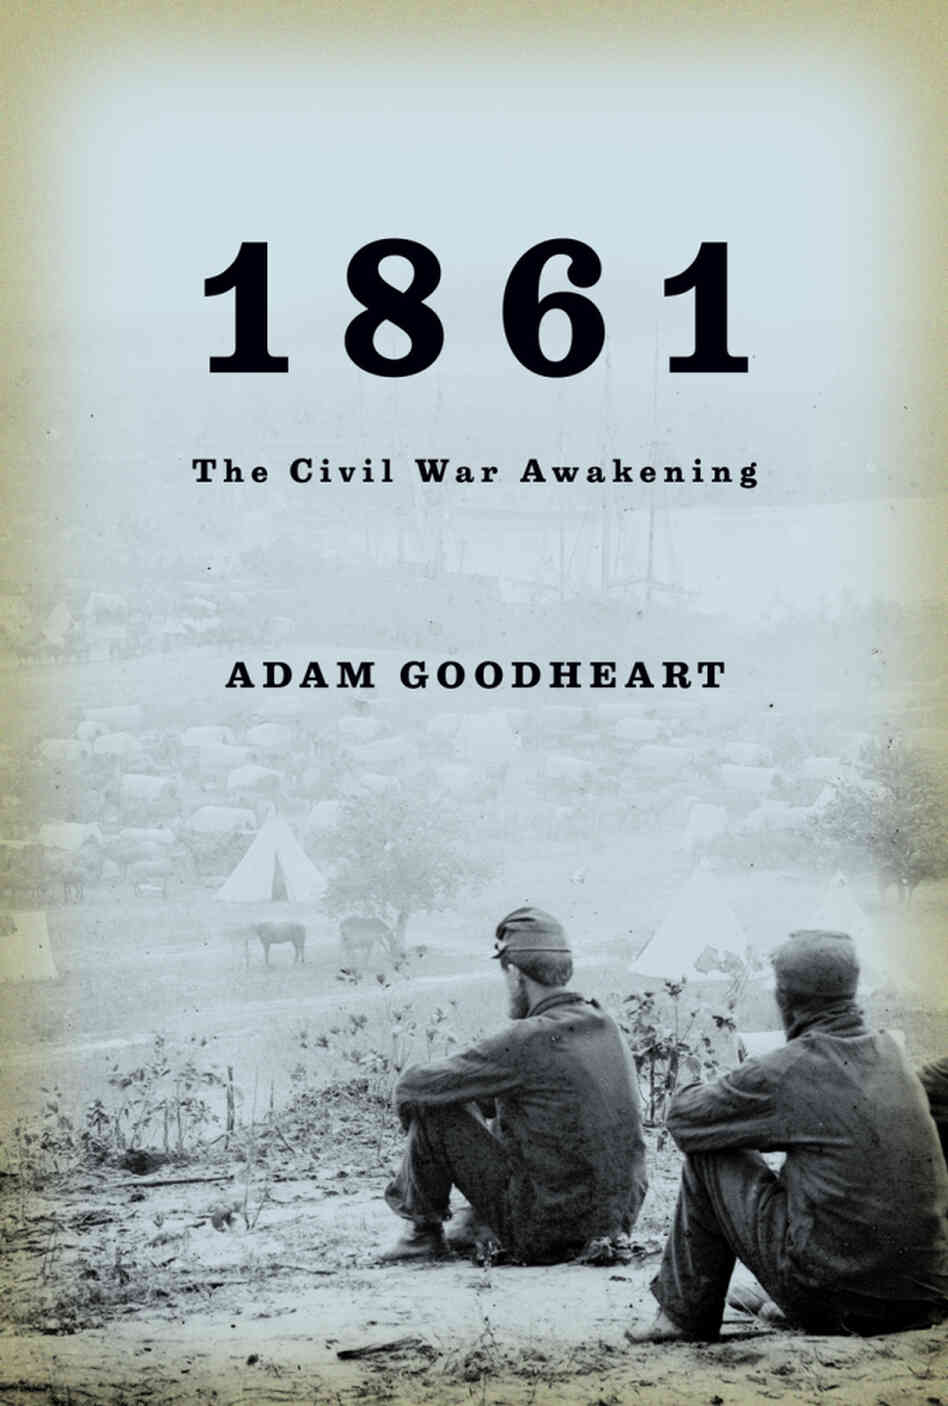 Adam goodheart looking at the civil war 150 years later npr